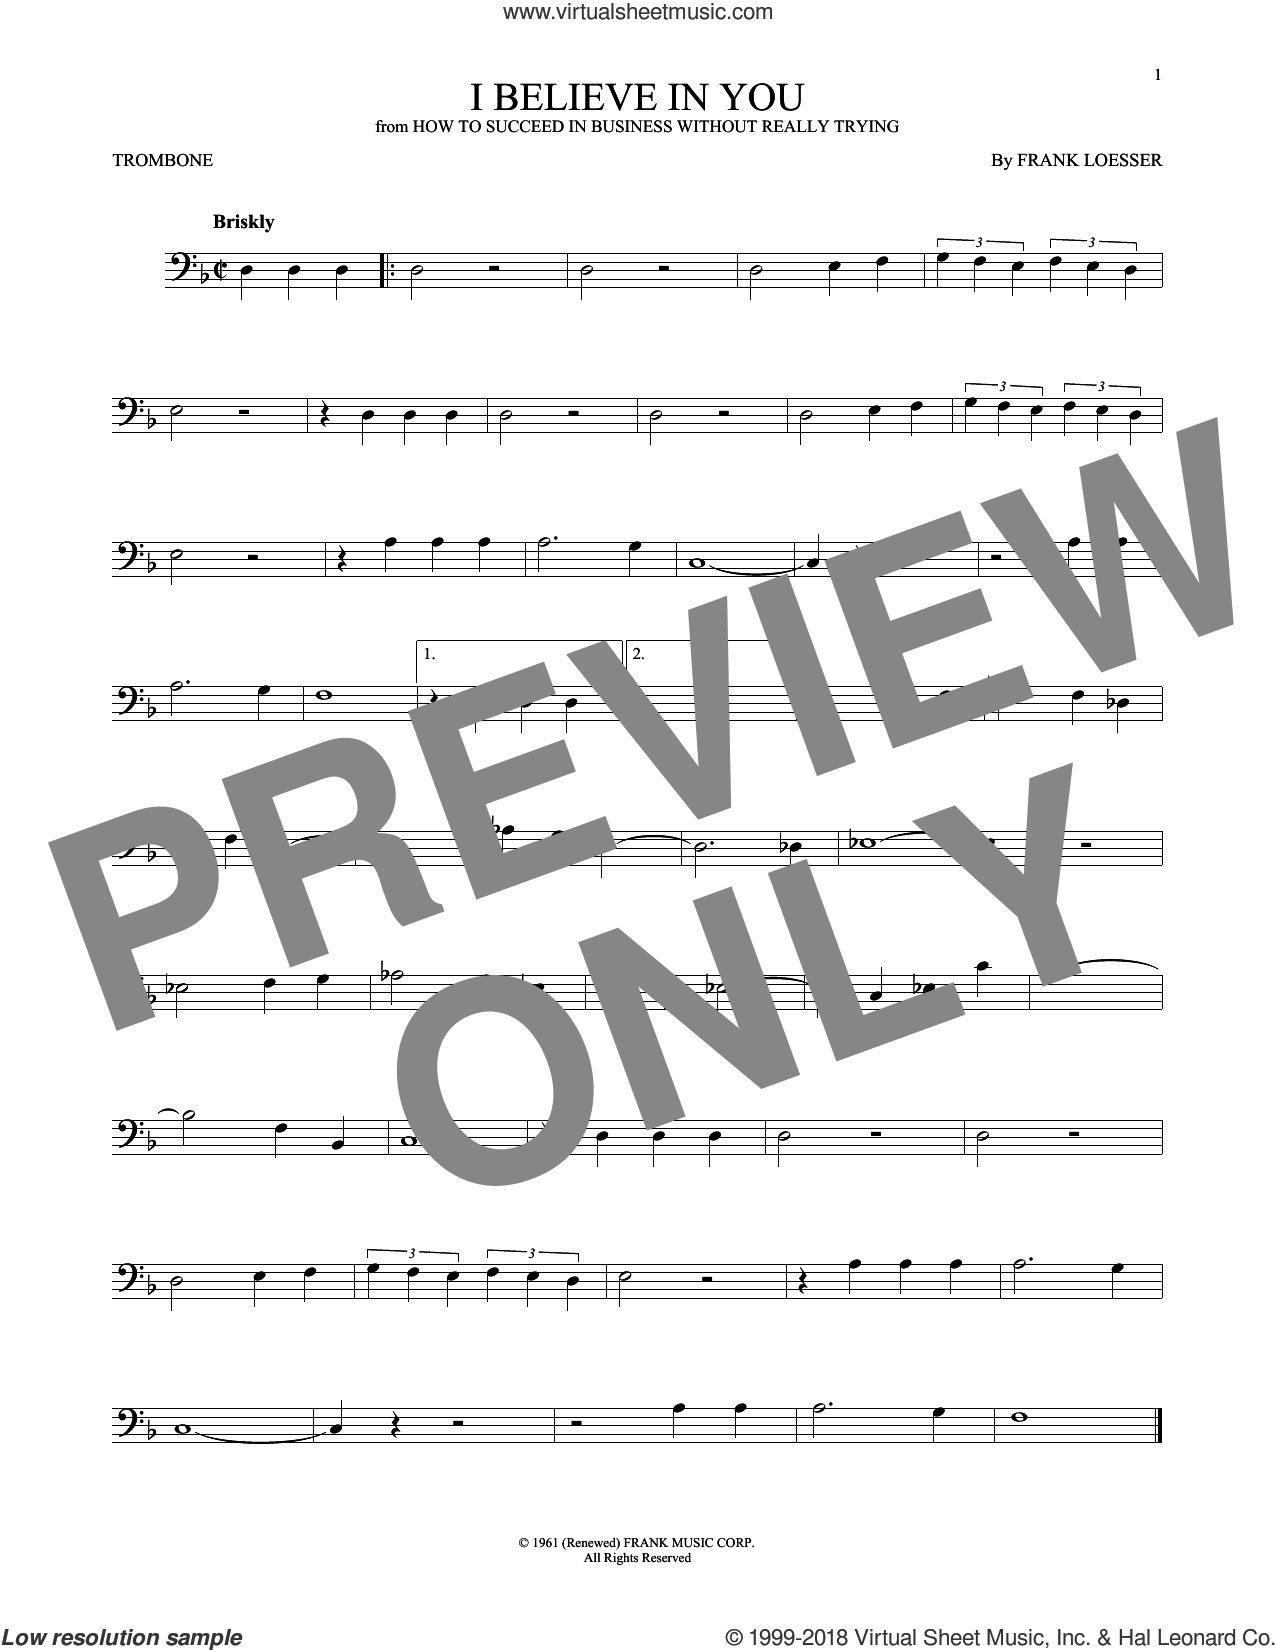 I Believe In You sheet music for trombone solo by Frank Loesser, intermediate skill level